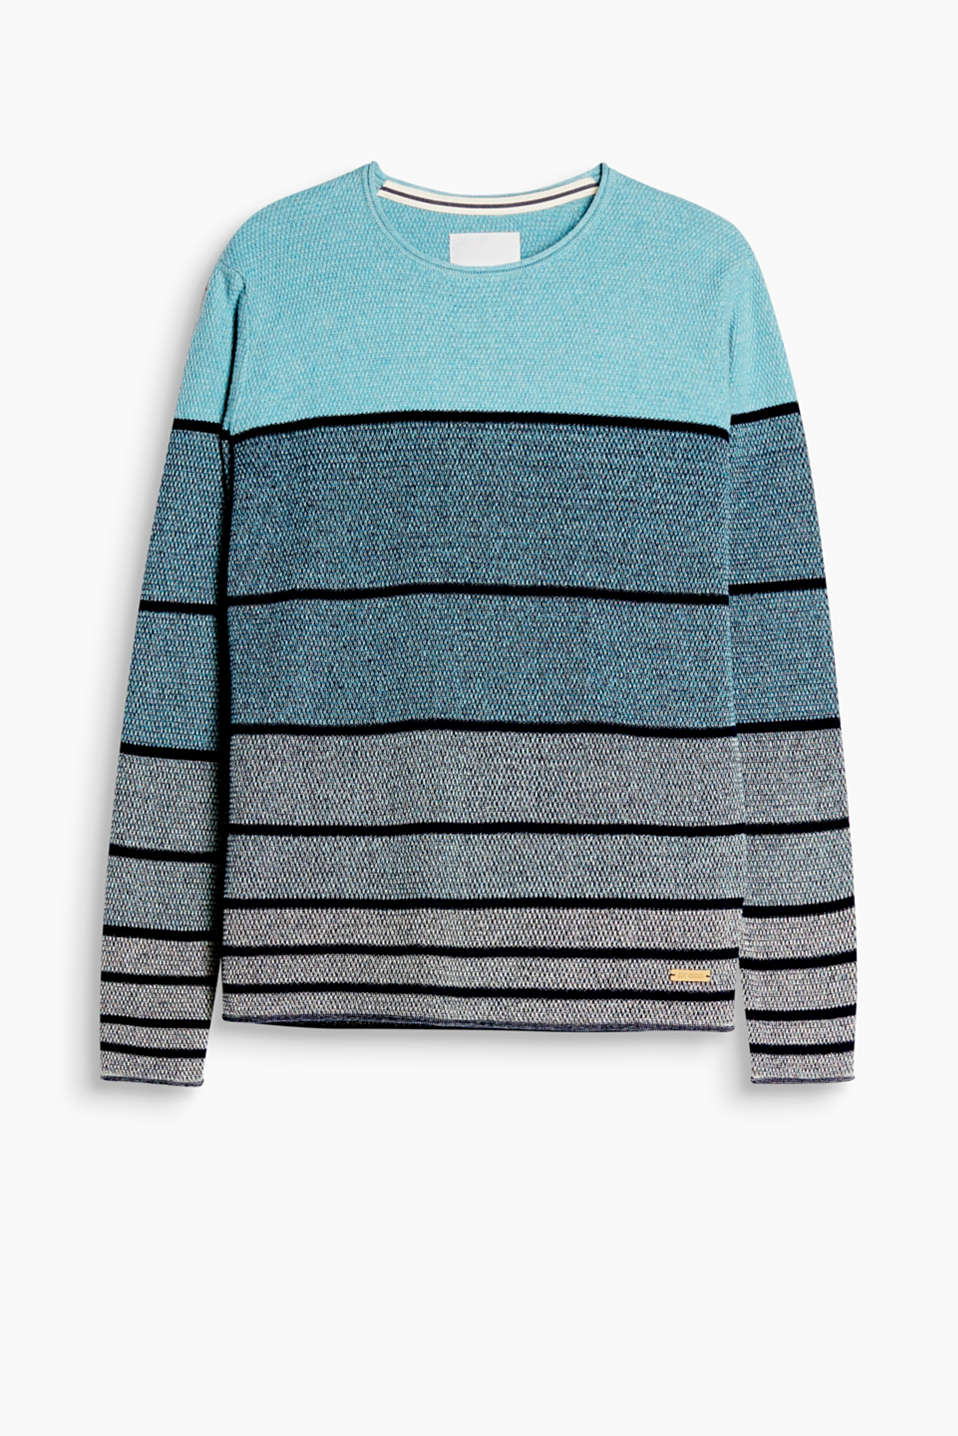 Jumper with block stripes and graduated colours in a high-quality textured knit, 100% cotton